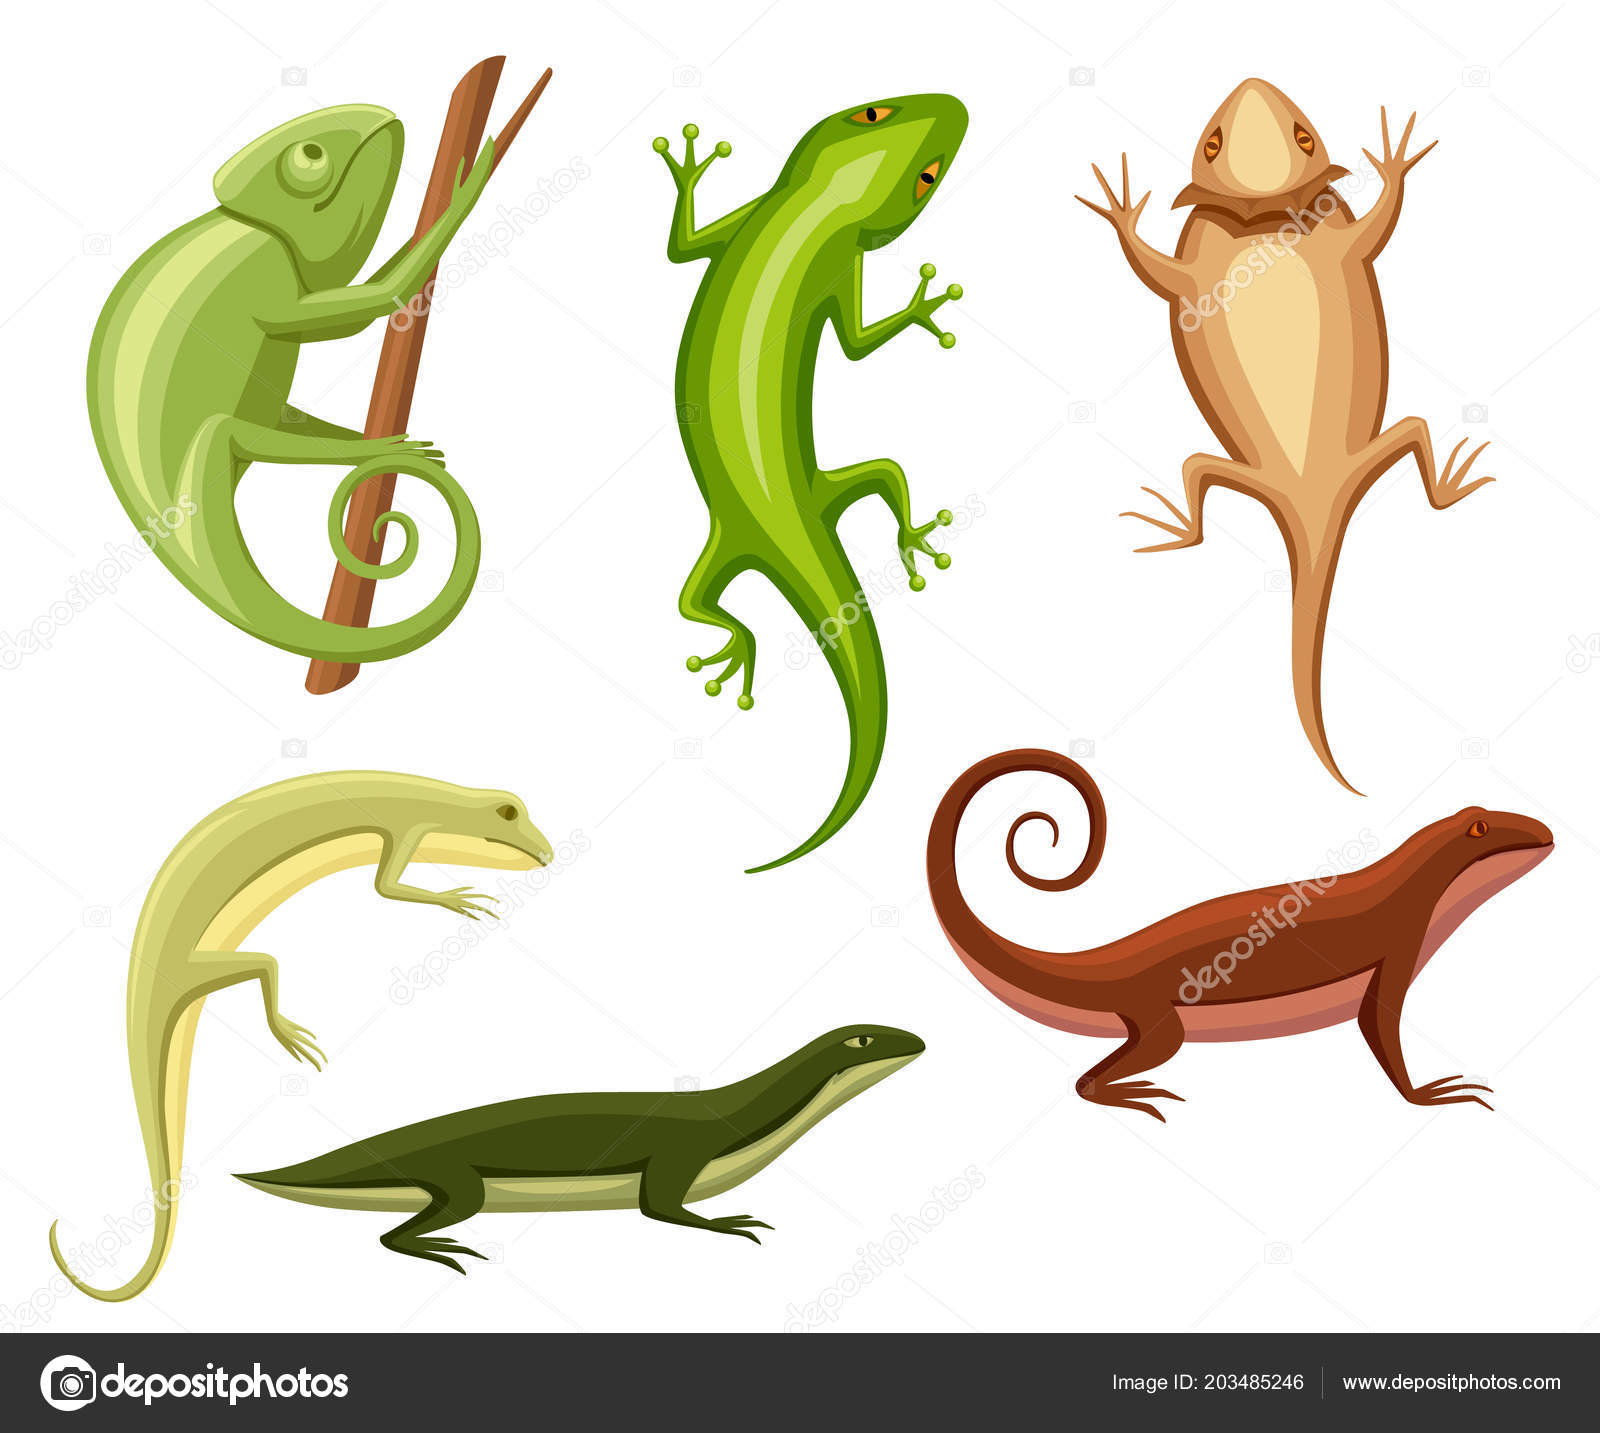 6eb10a52715e1 Flat lizards collection. Cartoon chameleon climb on branch. Small lizards  Animal flat icon collection. Vector illustration isolated on white  background.